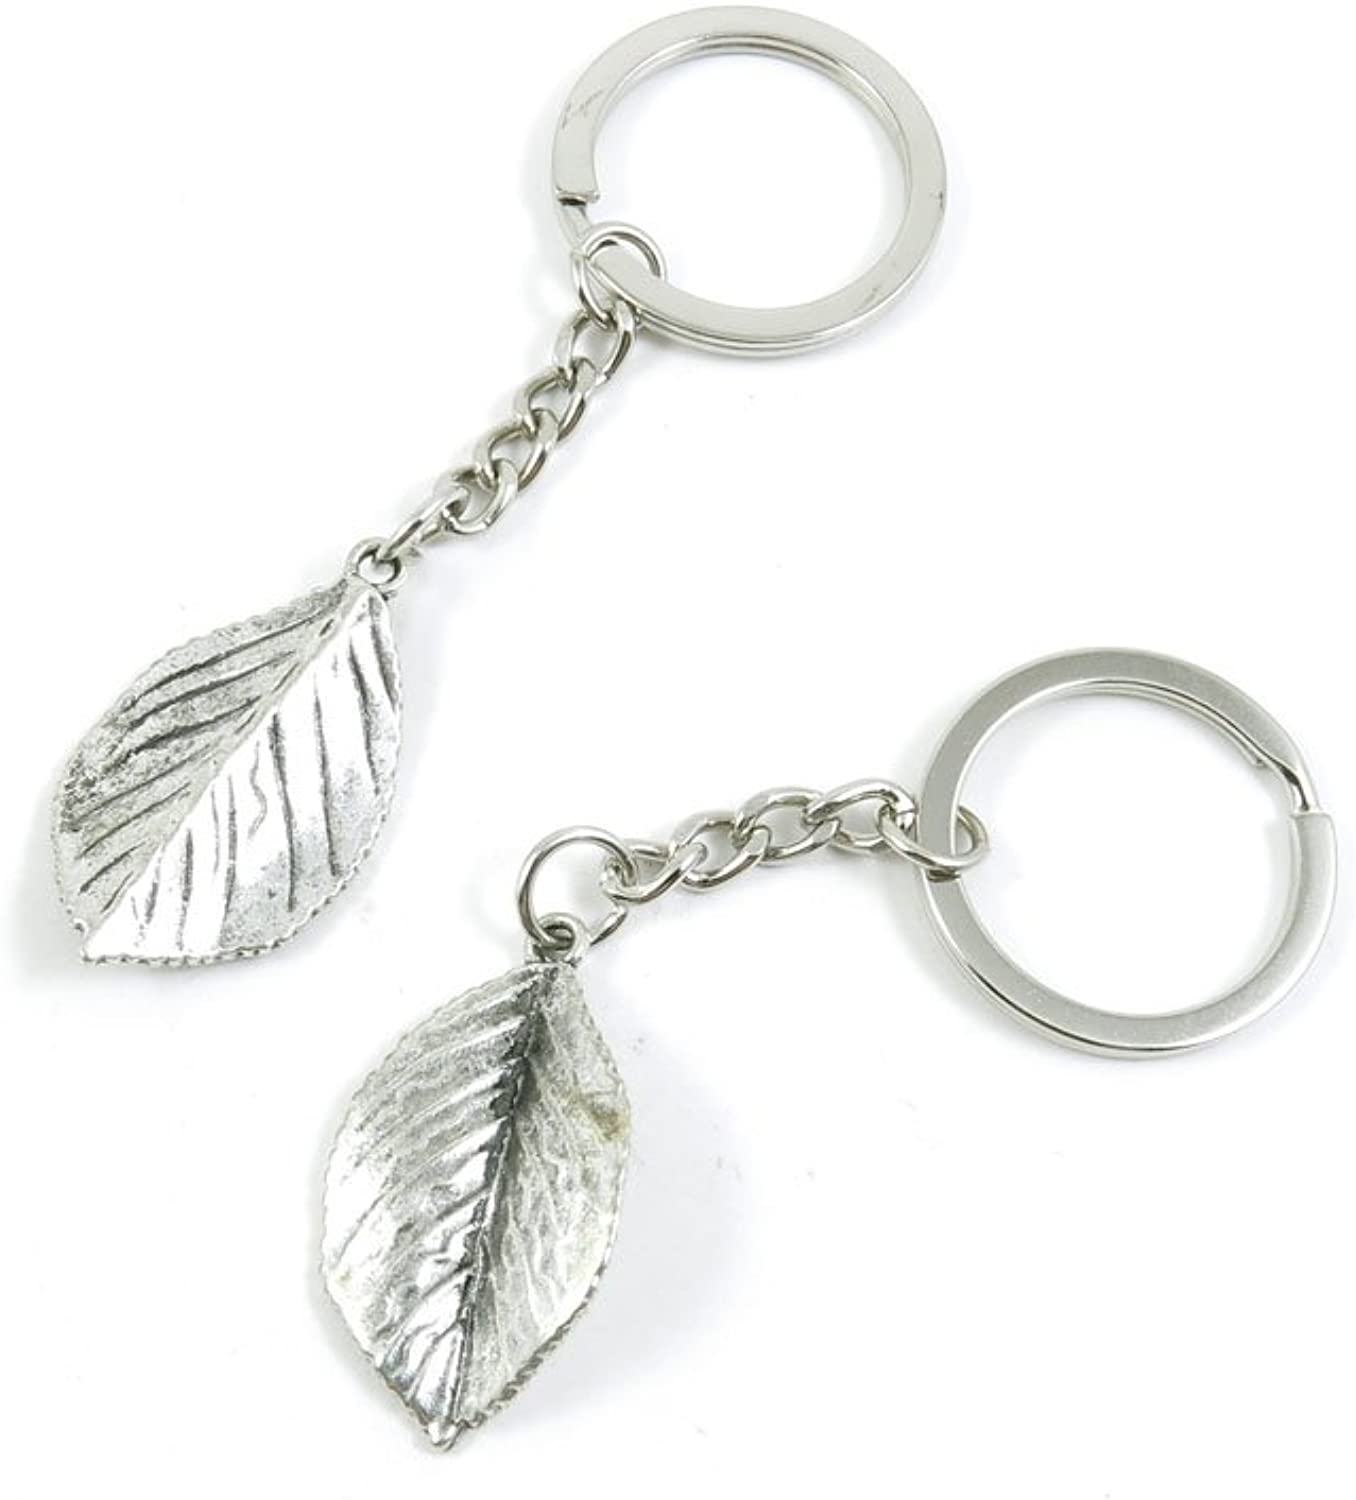 100 Pieces Keychain Keyring Door Car Key Chain Ring Tag Charms Bulk Supply Jewelry Making Clasp Findings T1IF1W Leaf Leaves